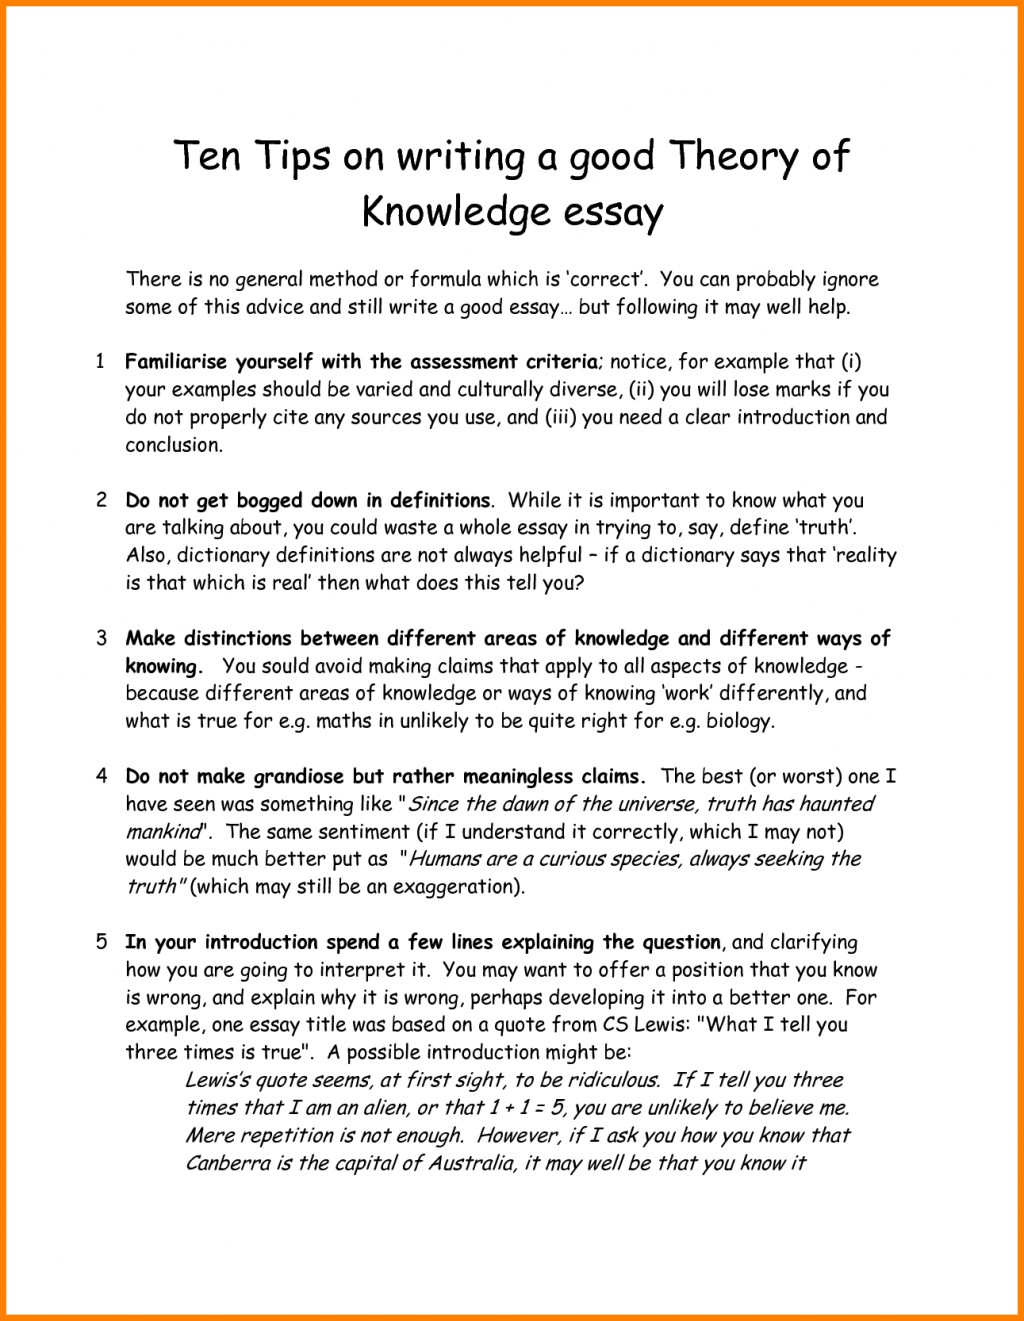 007 How Do You Start An Essay To Off About Yourself Singular Autobiography For College Introduction Write Application Examples Large